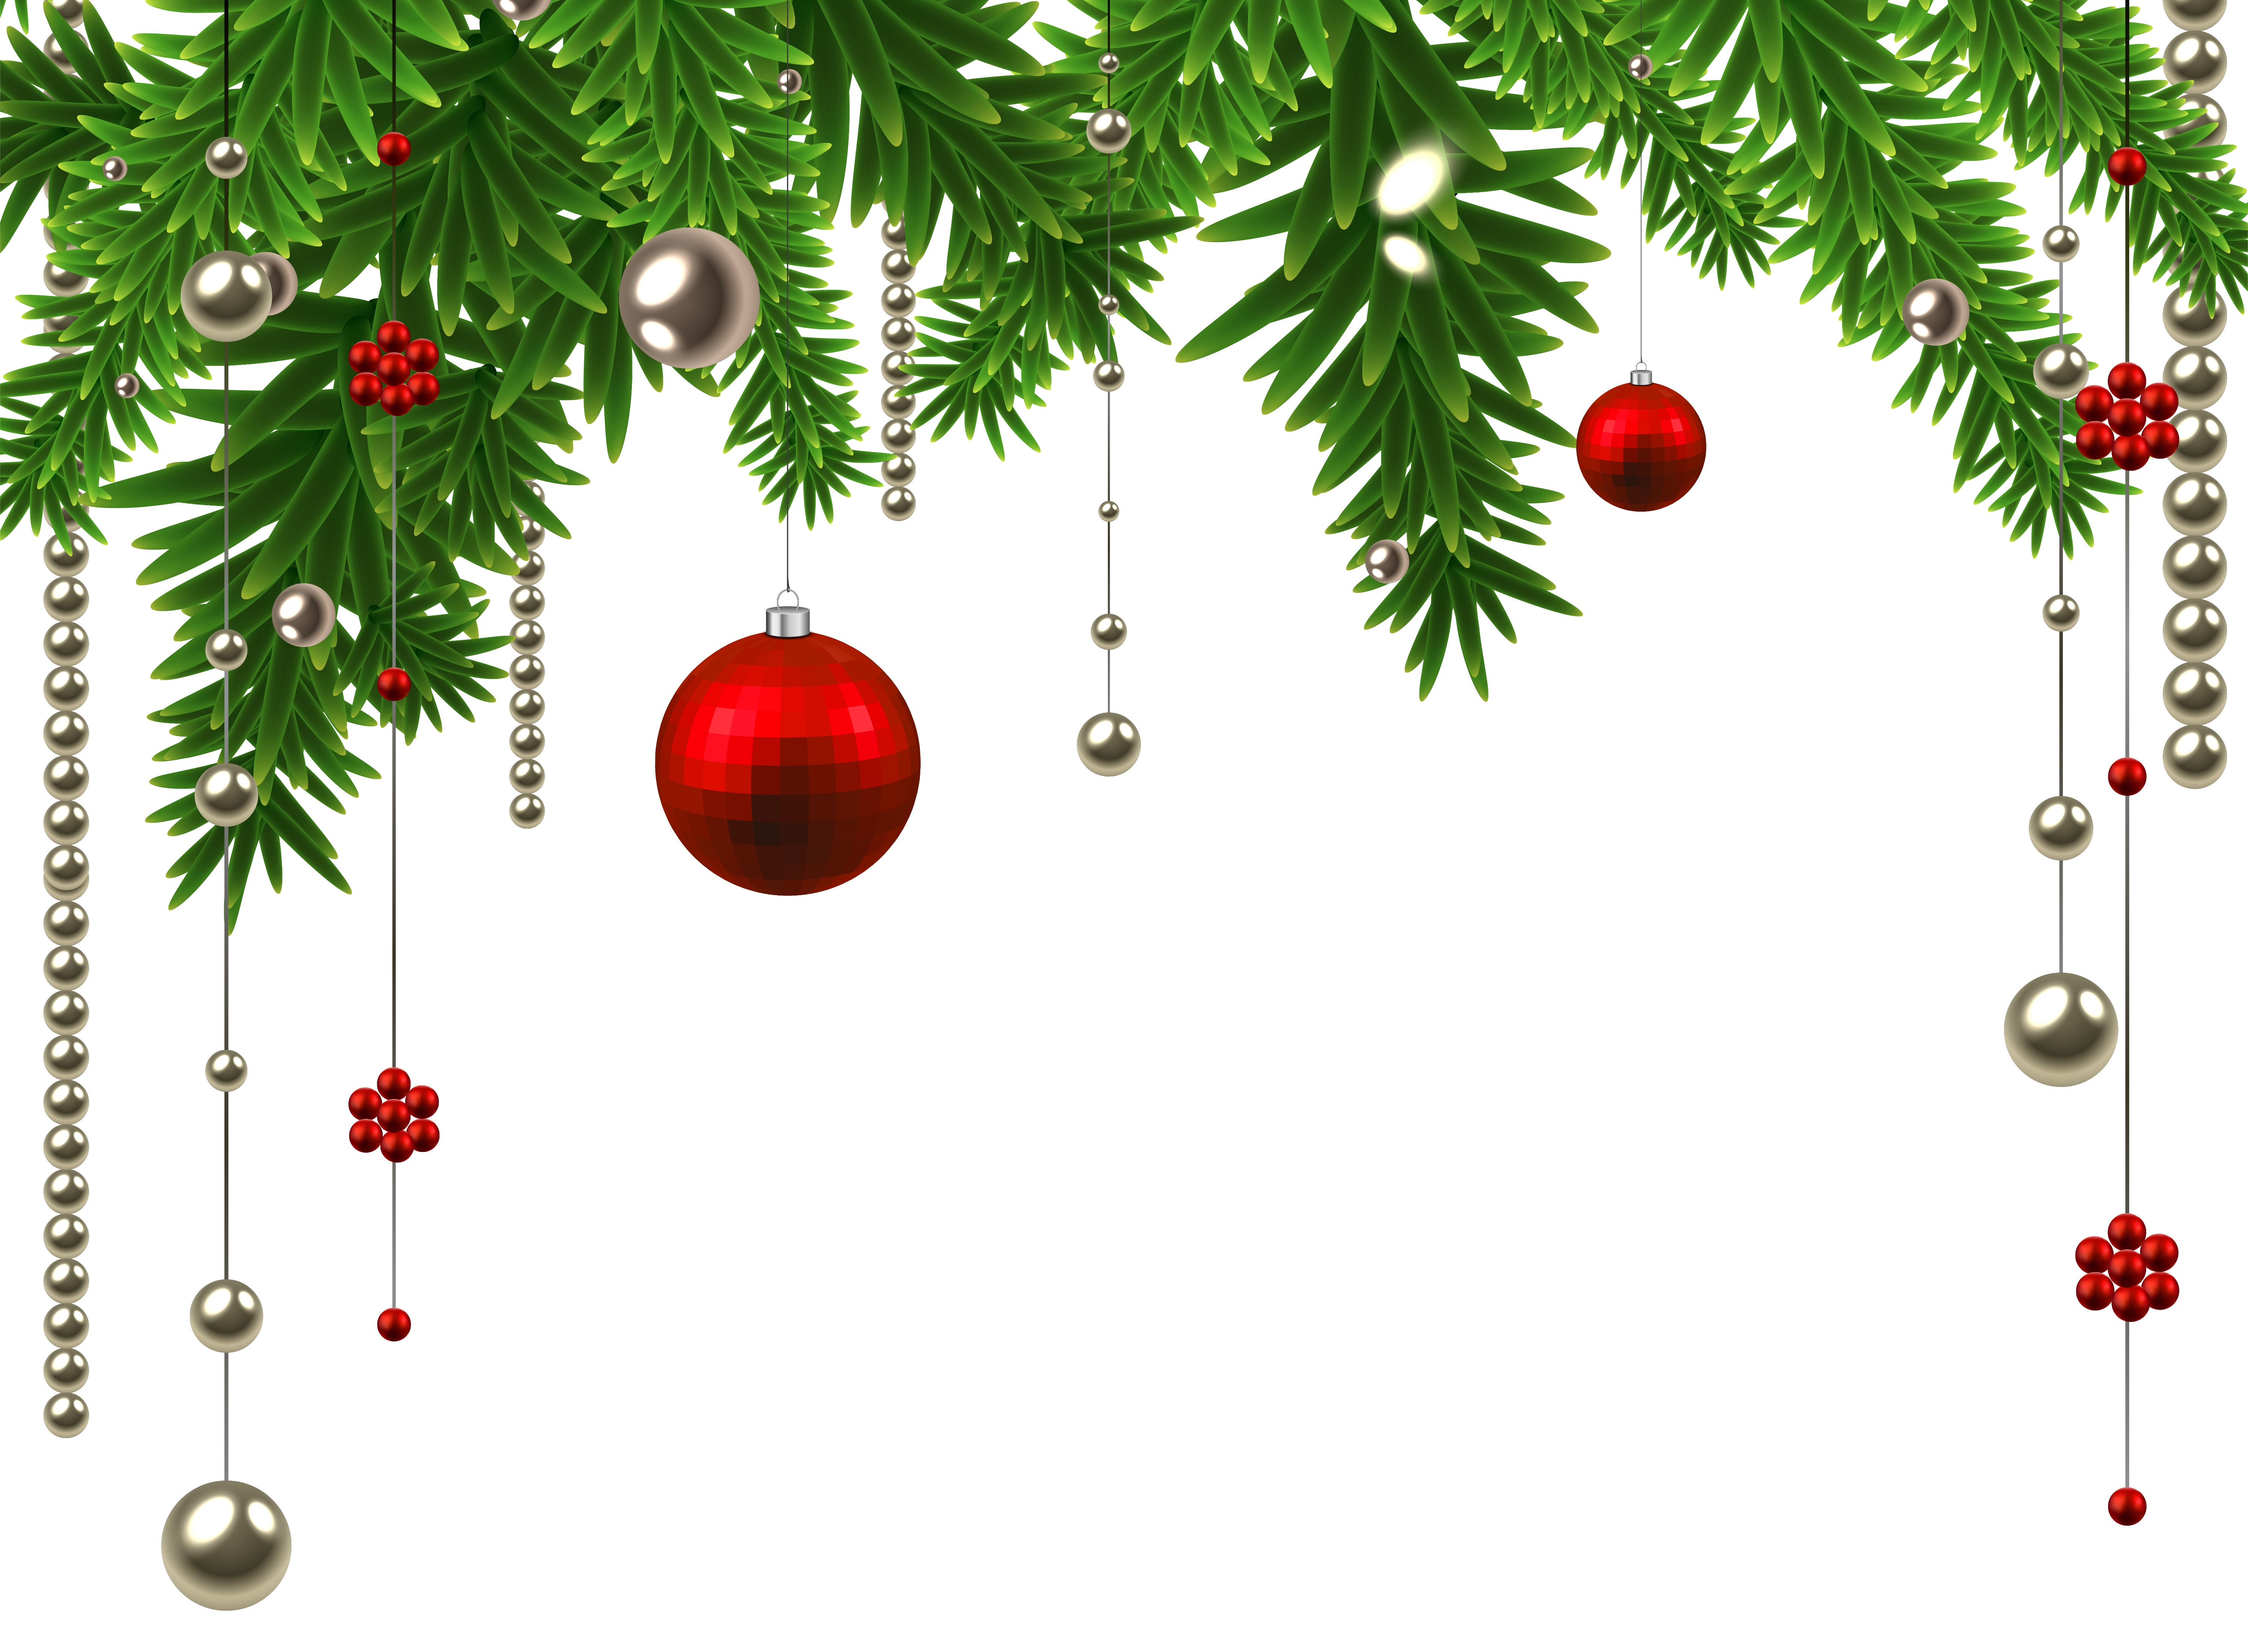 Hanging ball decoration clipart. Christmas ornament border png